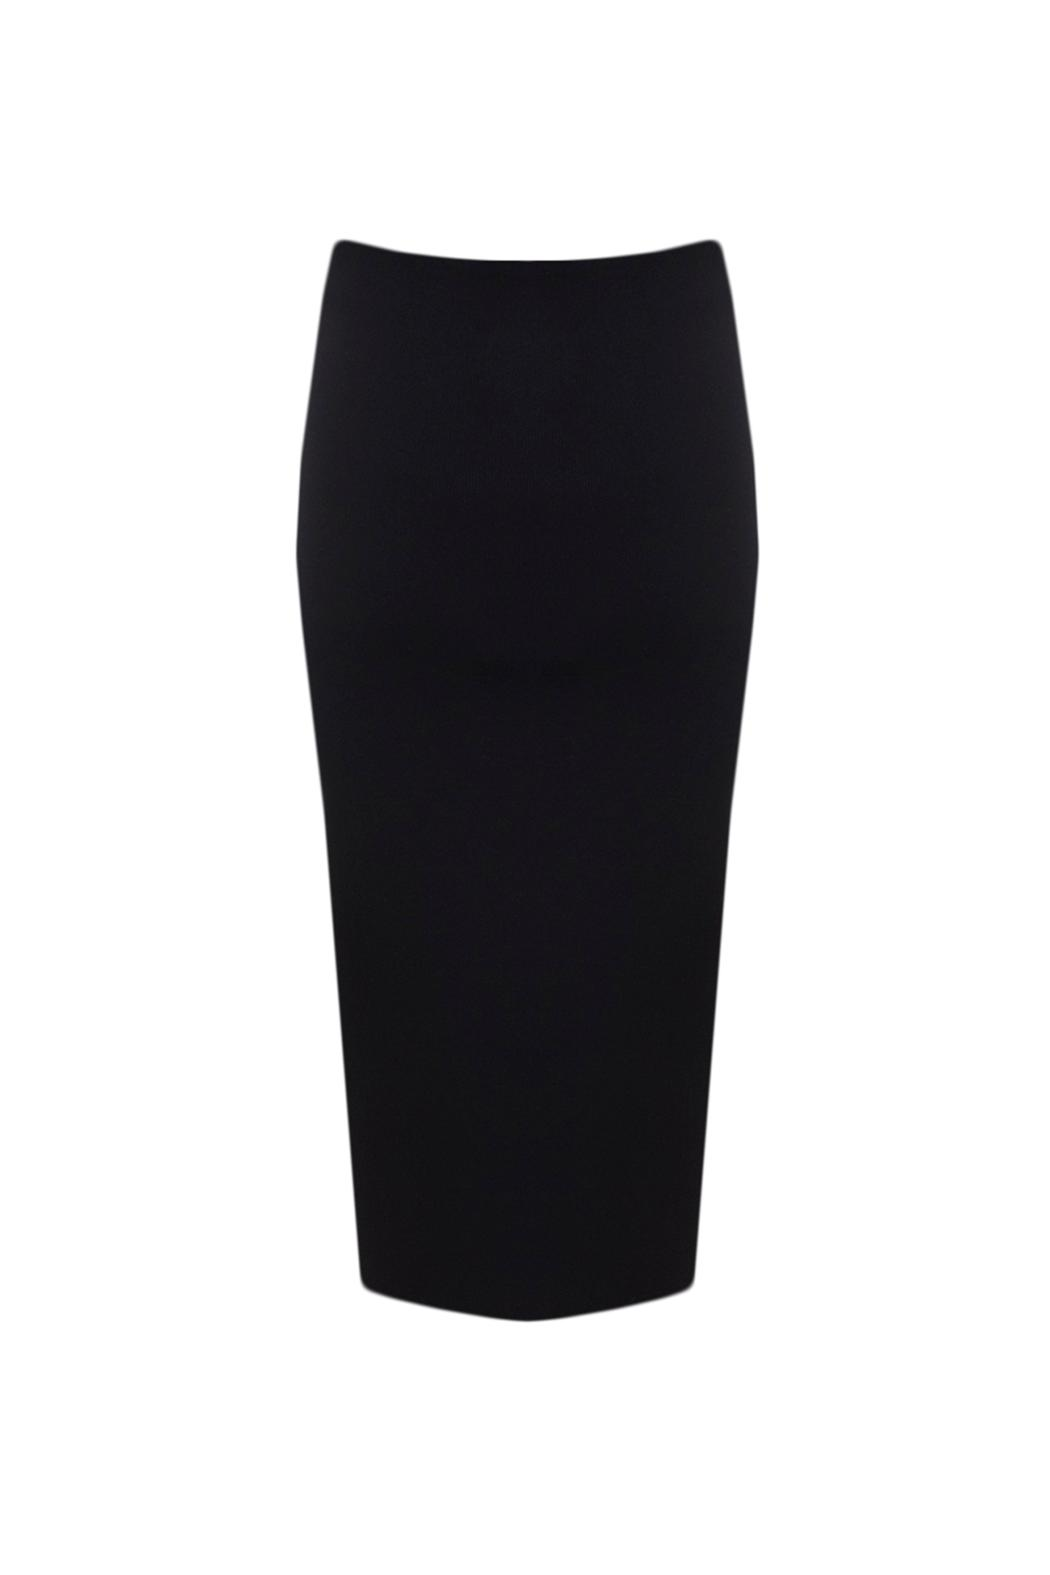 Charlie May Knit Pencil Skirt - Side Cropped Image